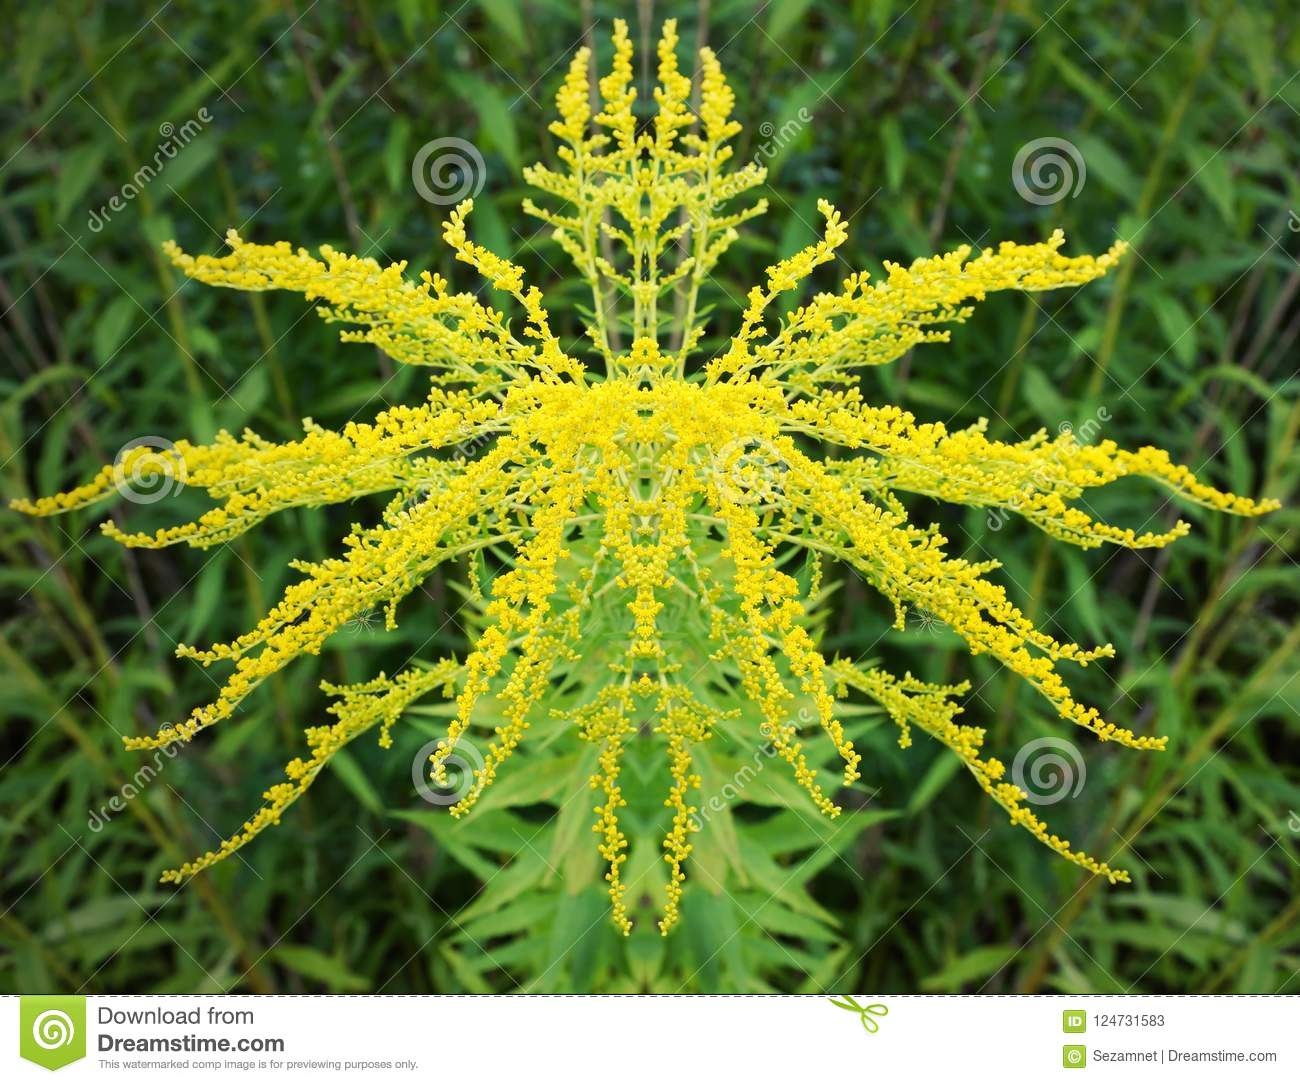 The Head Of The Yellow Mimosa Flower Geometry Is The Correct Sym ...